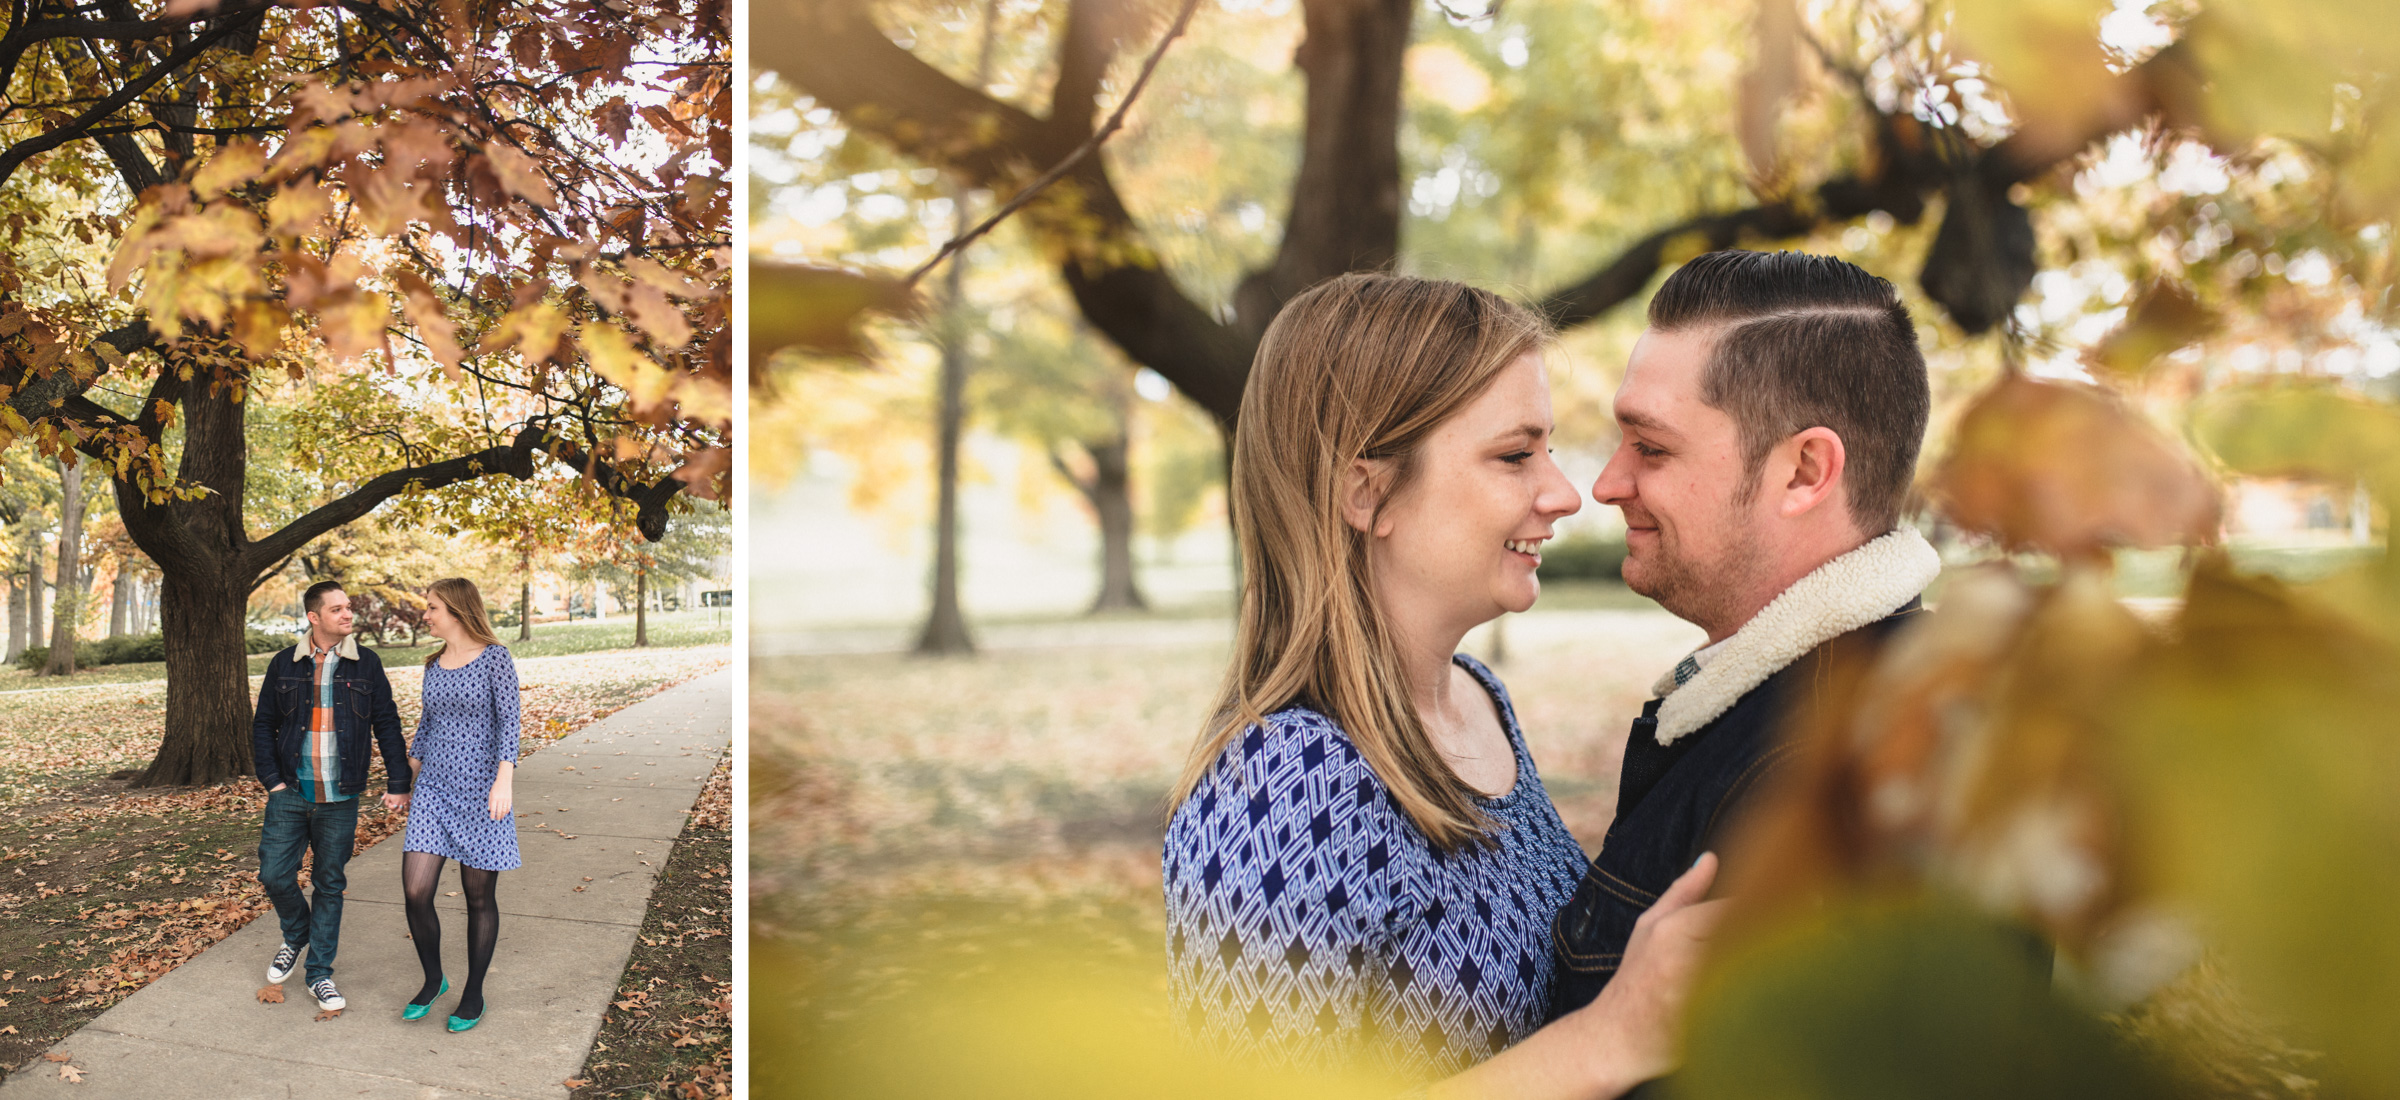 Kate_Bobby__Engagement_Session_Kansas_City_In_Home_Session_Autumn_Kelsey_Diane_Photography_9.jpg